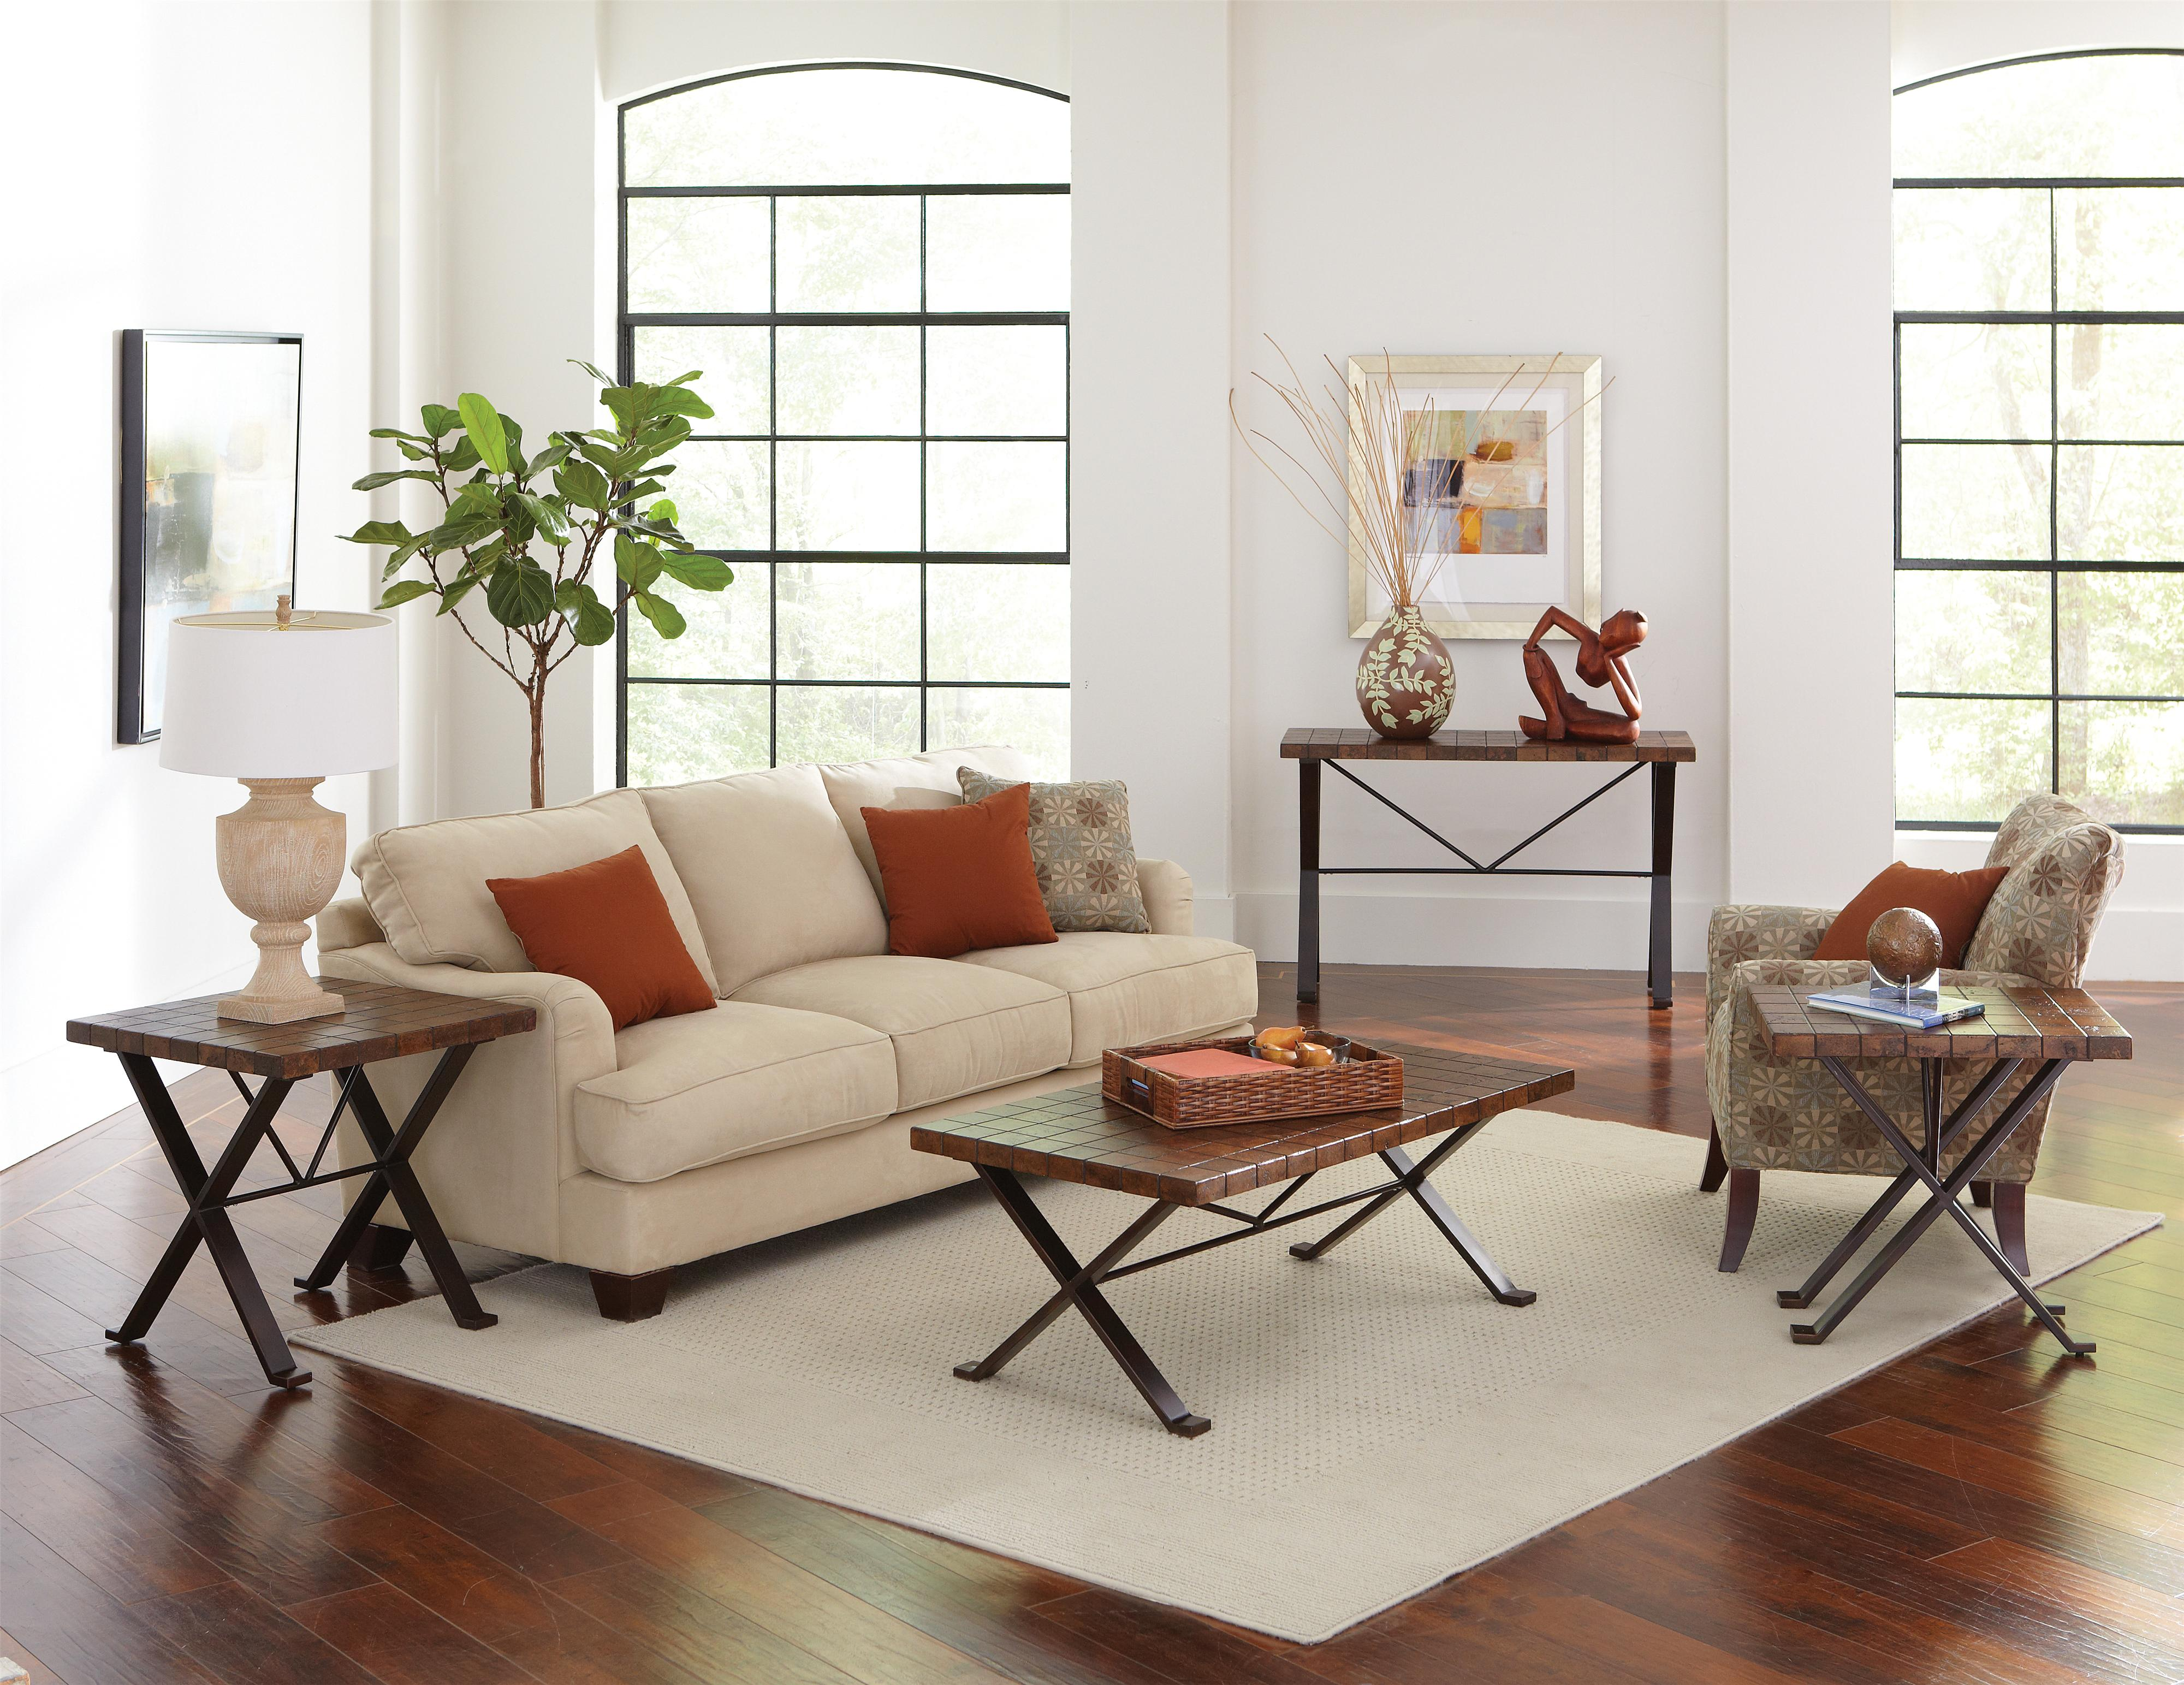 White Sofa By Sprintz Furniture With Orange Cushion And White Carpet On  Wooden Floor For Living